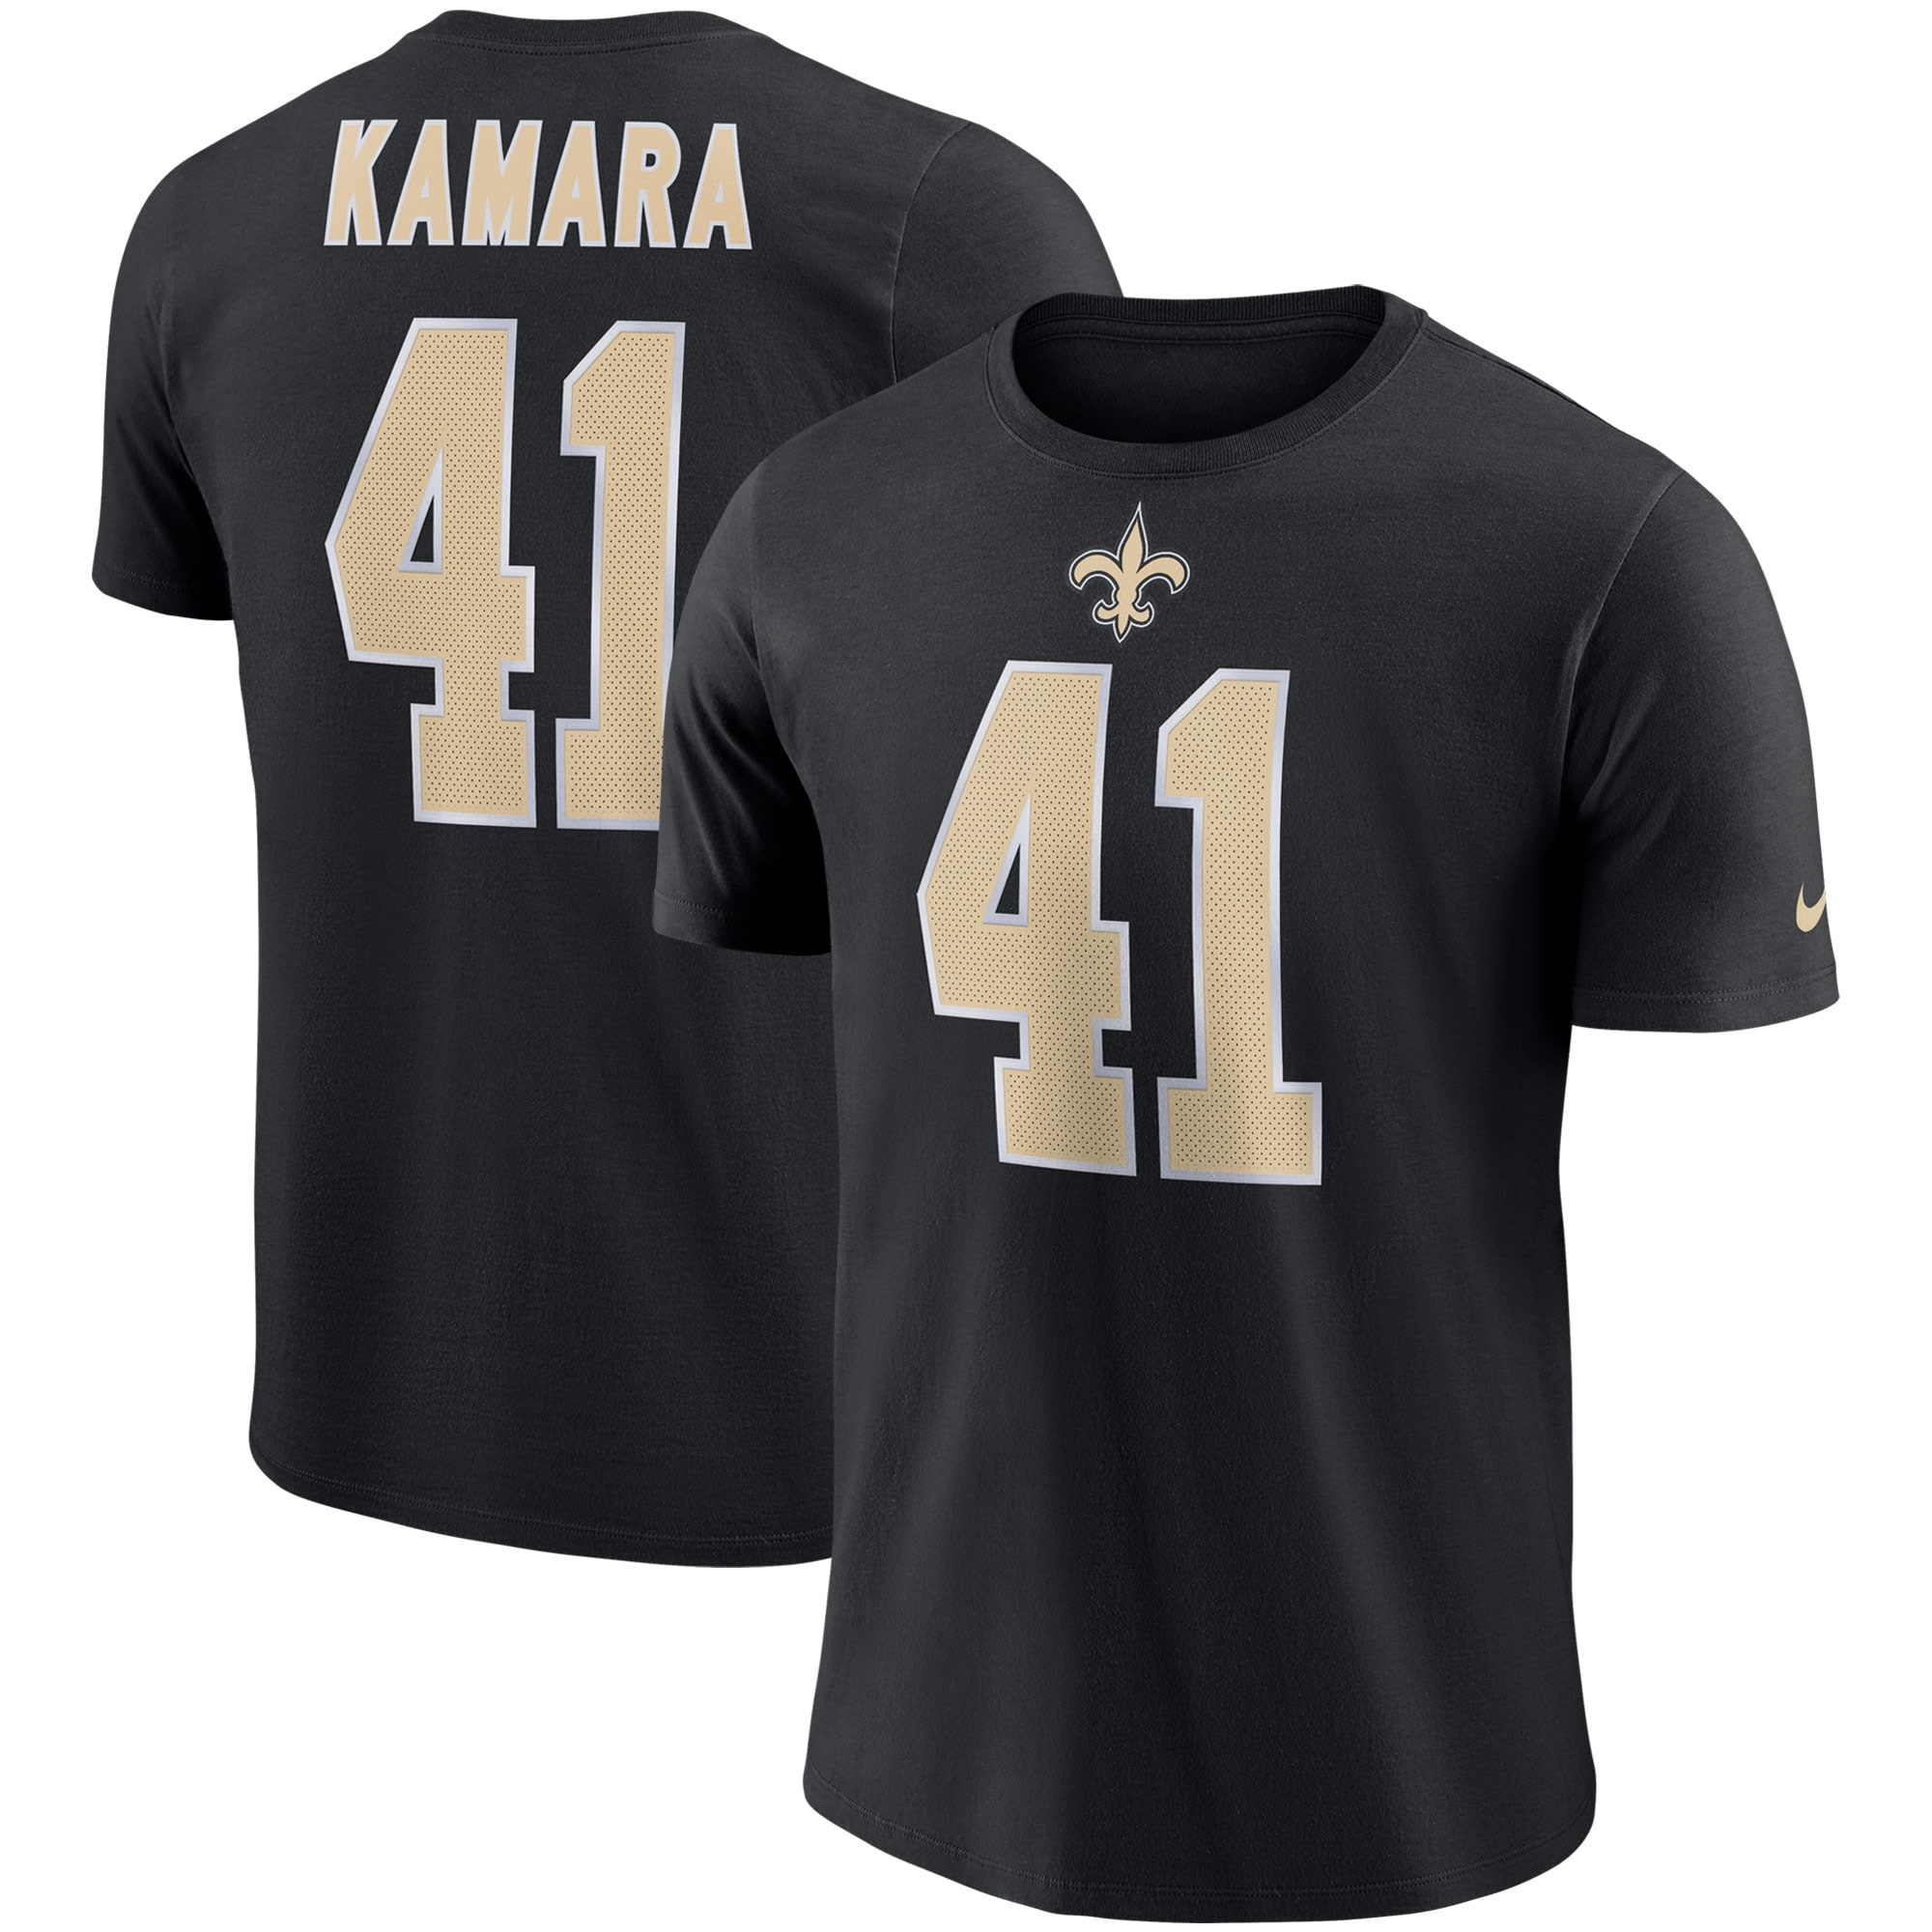 Alvin Kamara New Orleans Saints Nike Dri-FIT Cotton Player Pride 3.0 Name & Number T-Shirt - Black